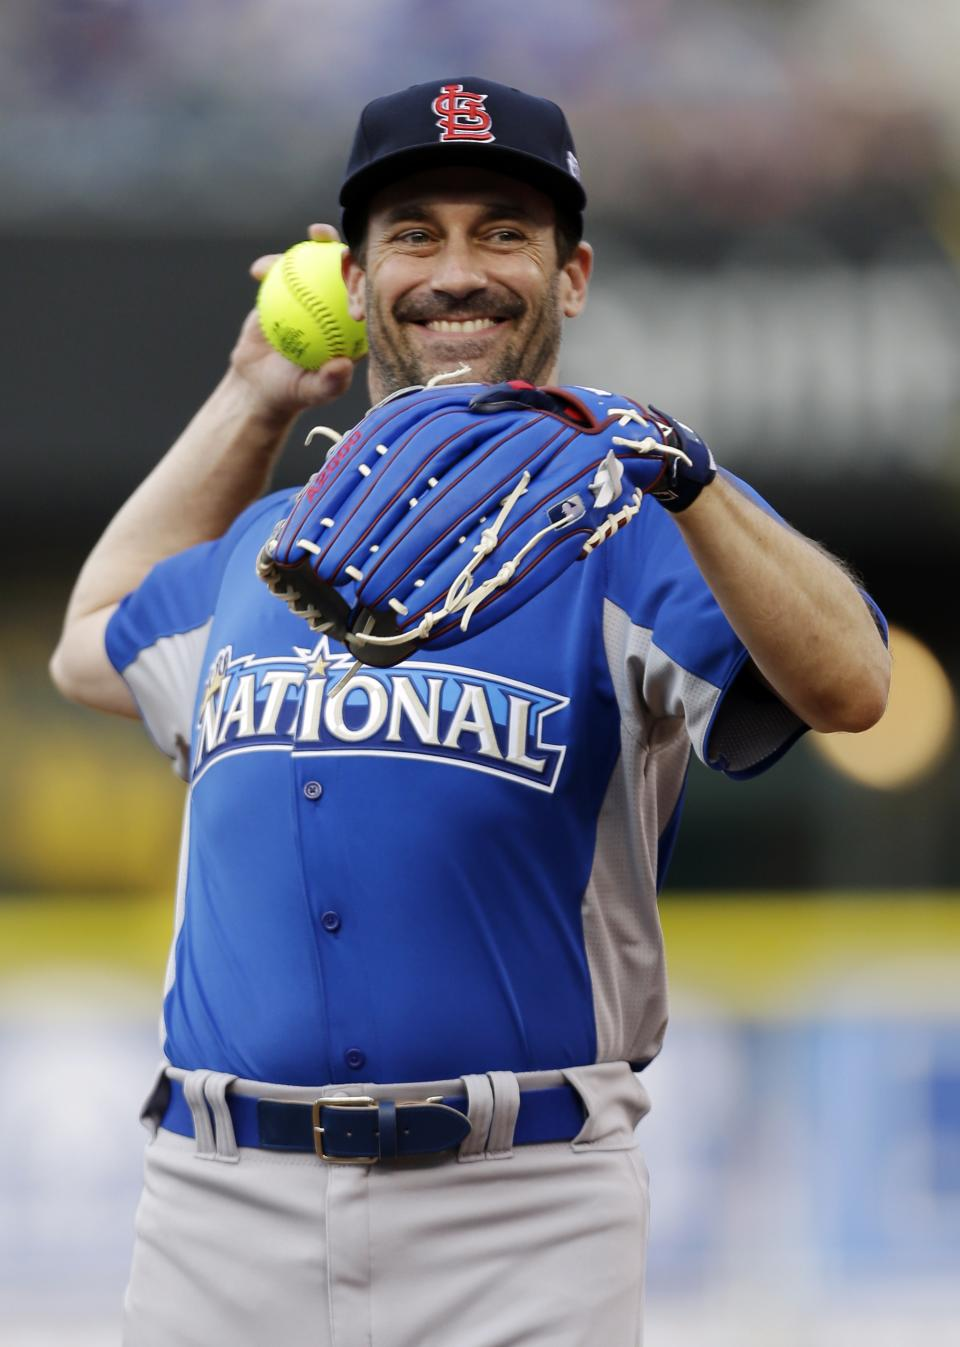 Actor Jon Hamm warms up before the MLB All-Star celebrity softball game, Sunday, July 8, 2012, in Kansas City, Mo. (AP Photo/Jeff Roberson)